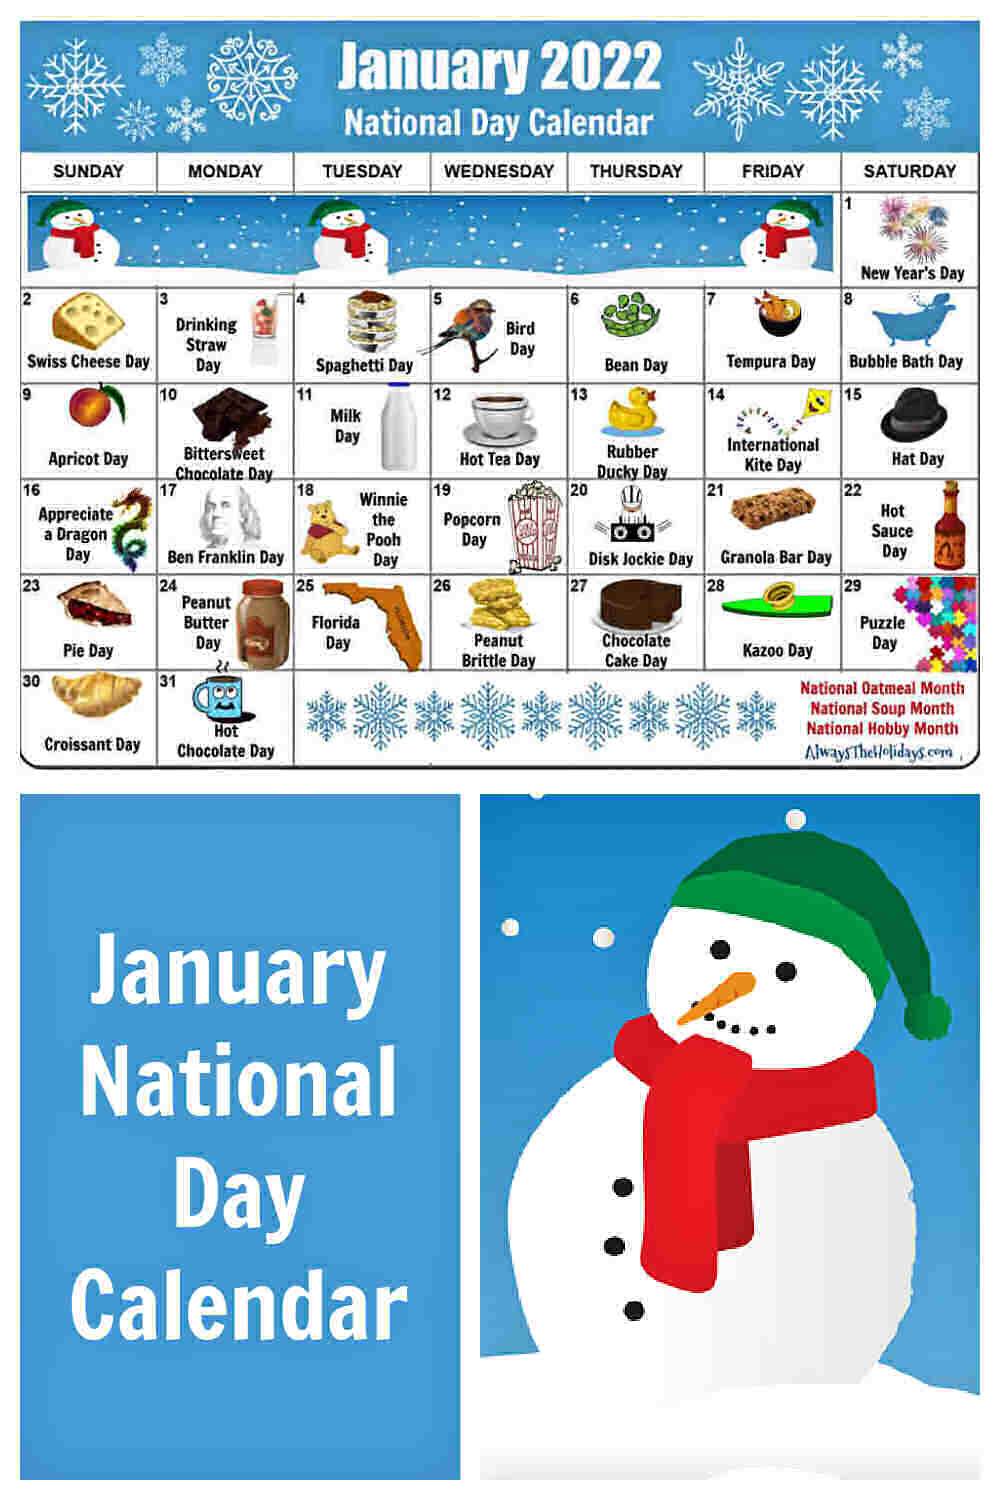 Calendar for January 2022 with snowman picture and words January National Day Calendar.